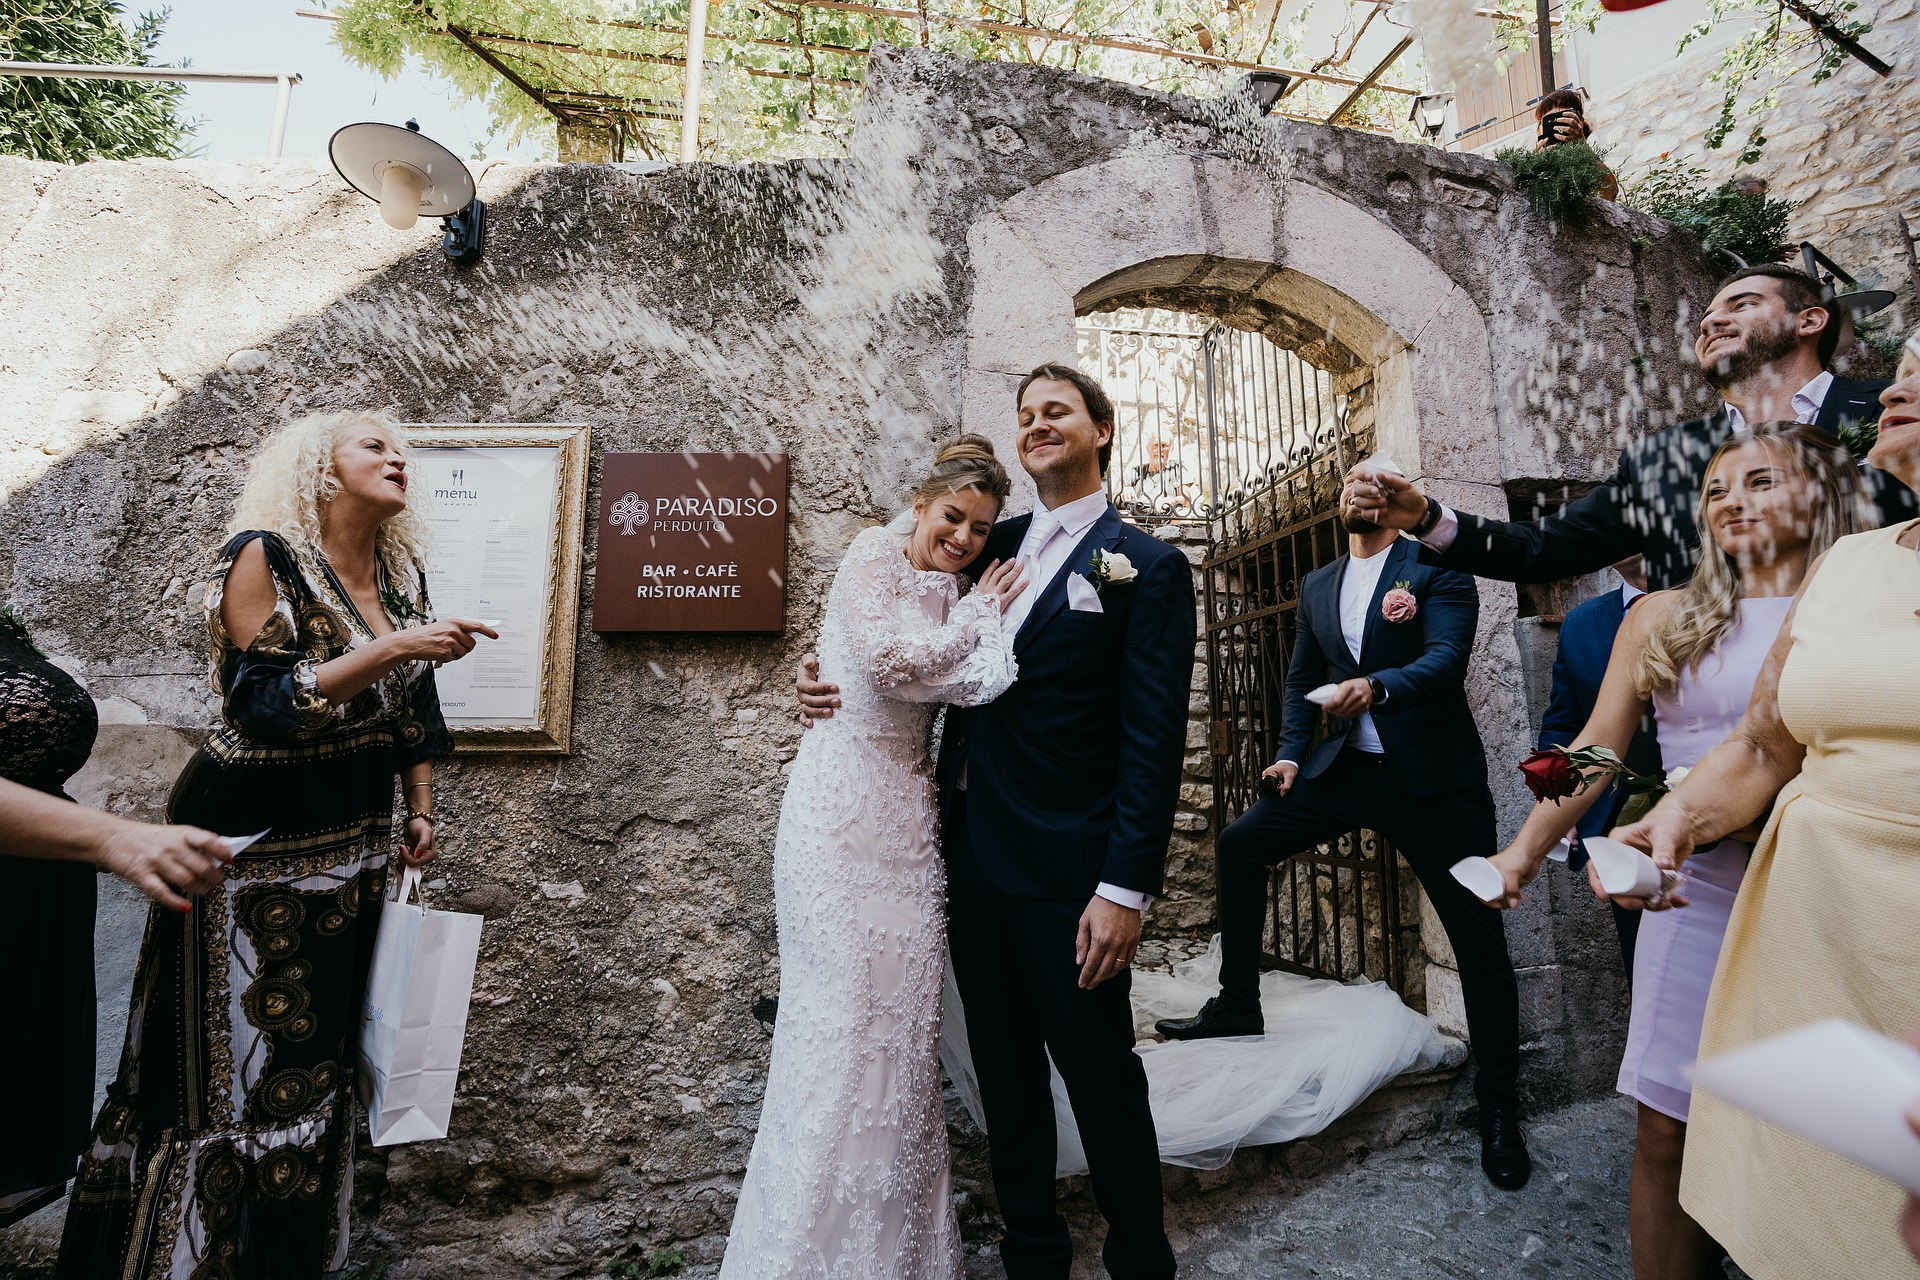 Malcesine - Paradiso Perduto Restaurant Elopement Venue Image | Rice is thrown at the bride and groom